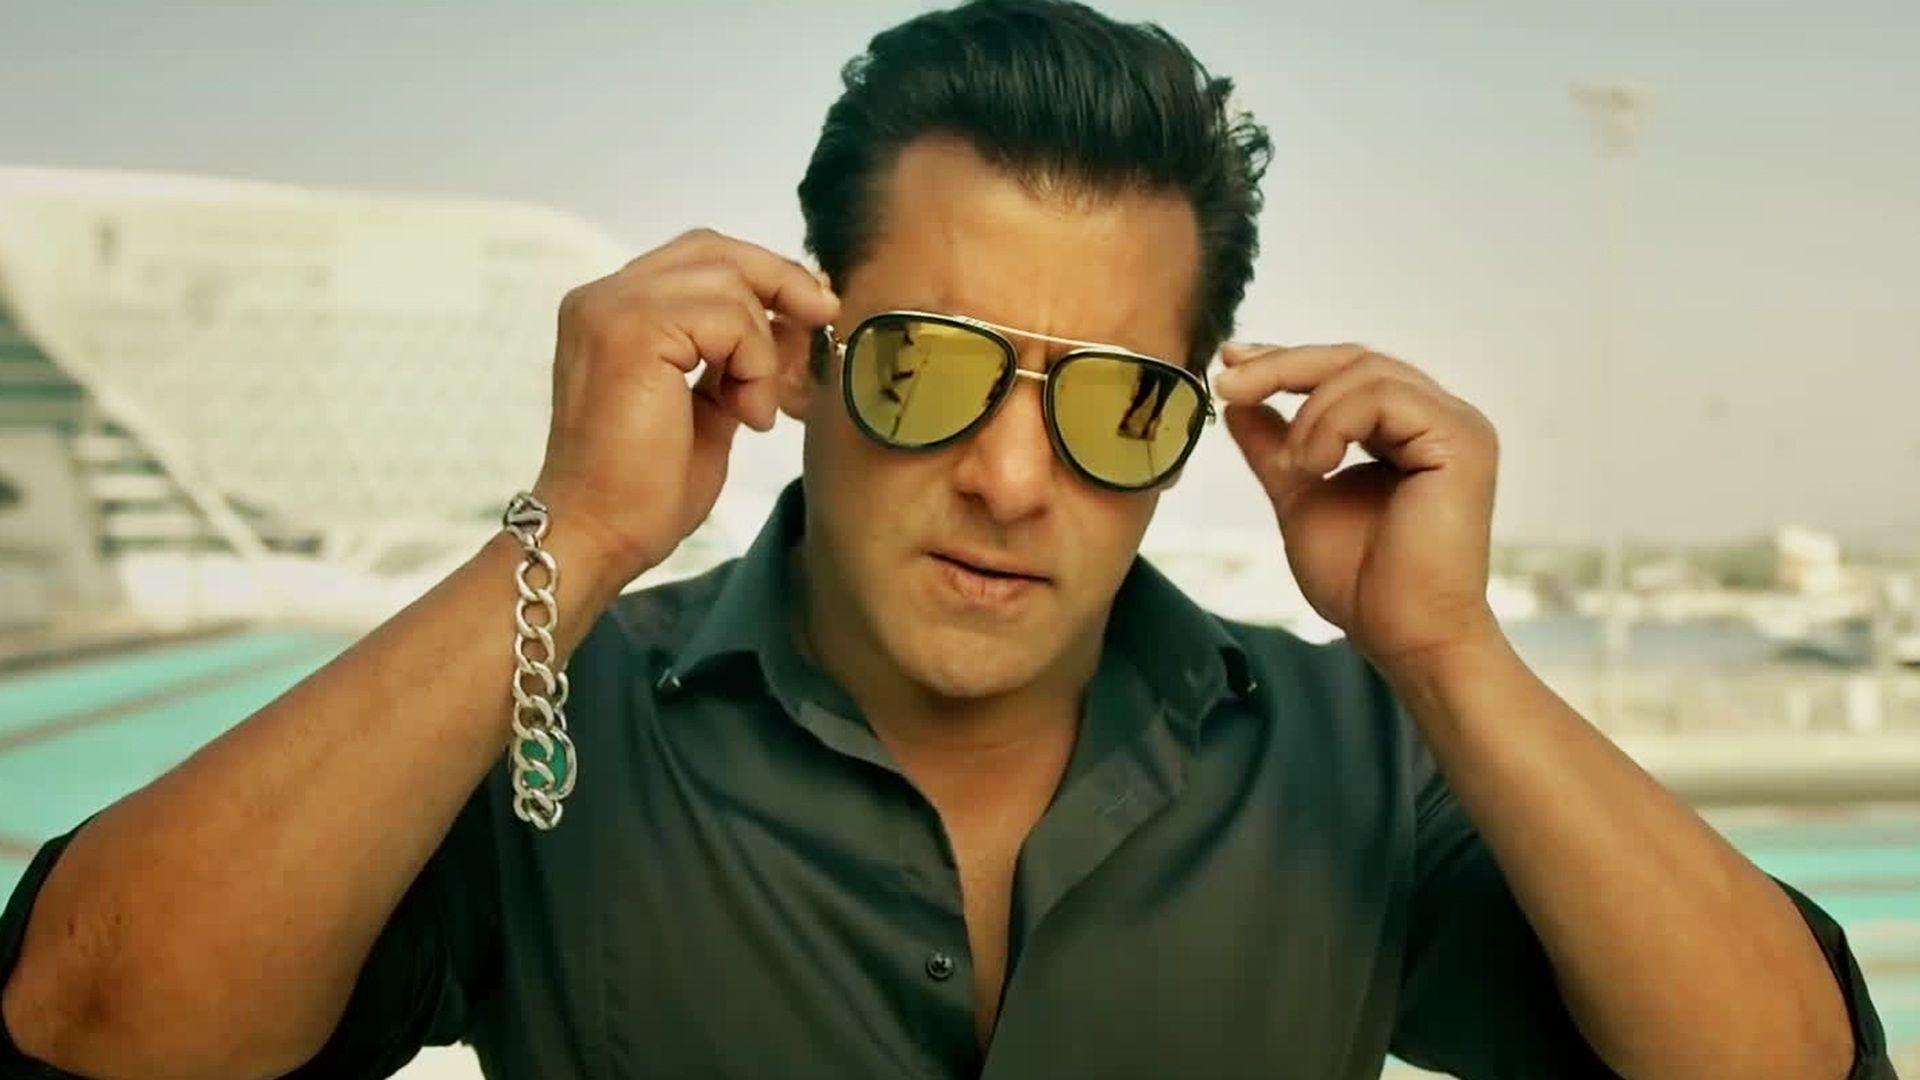 Which is not Salman Khan's movie?